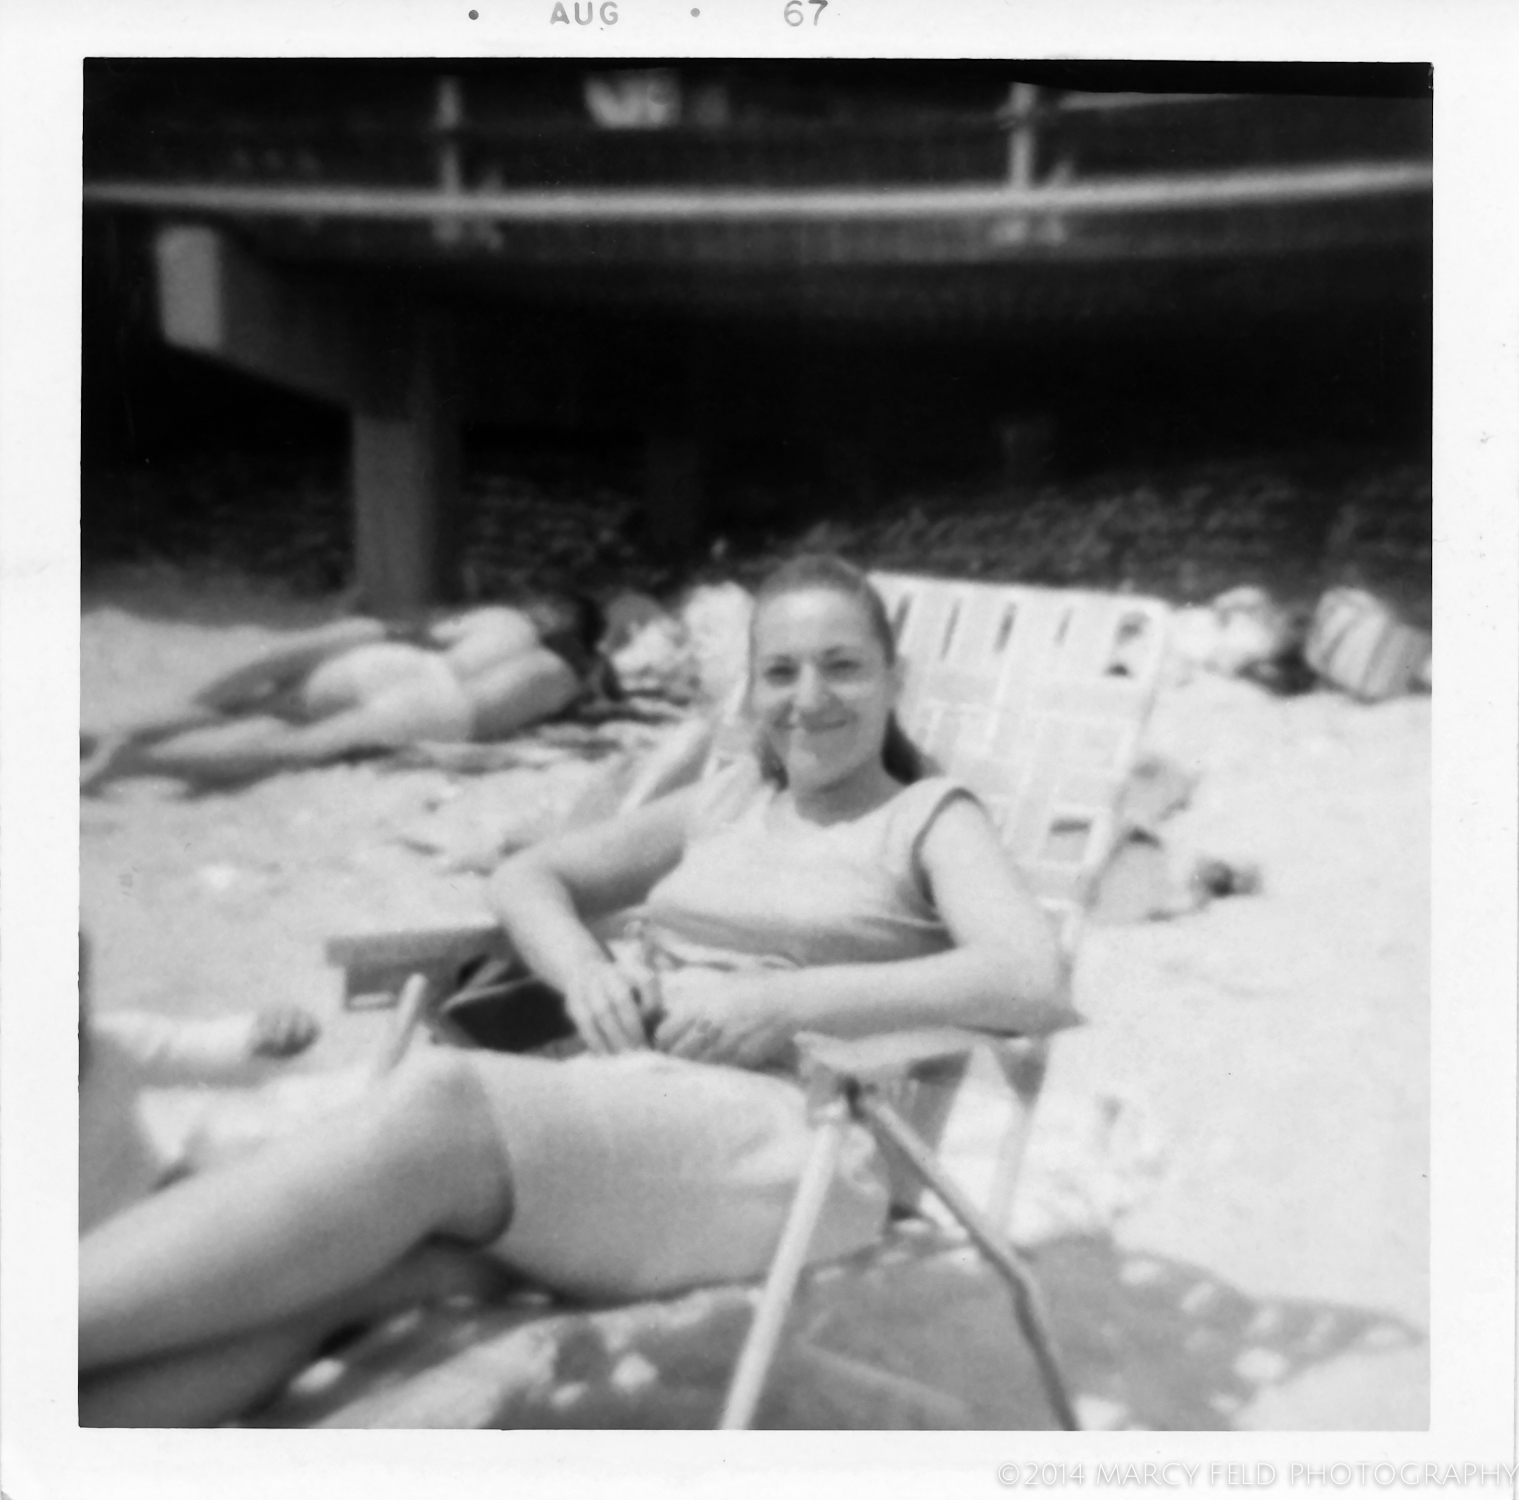 A day at the beach with my aunt in 1967